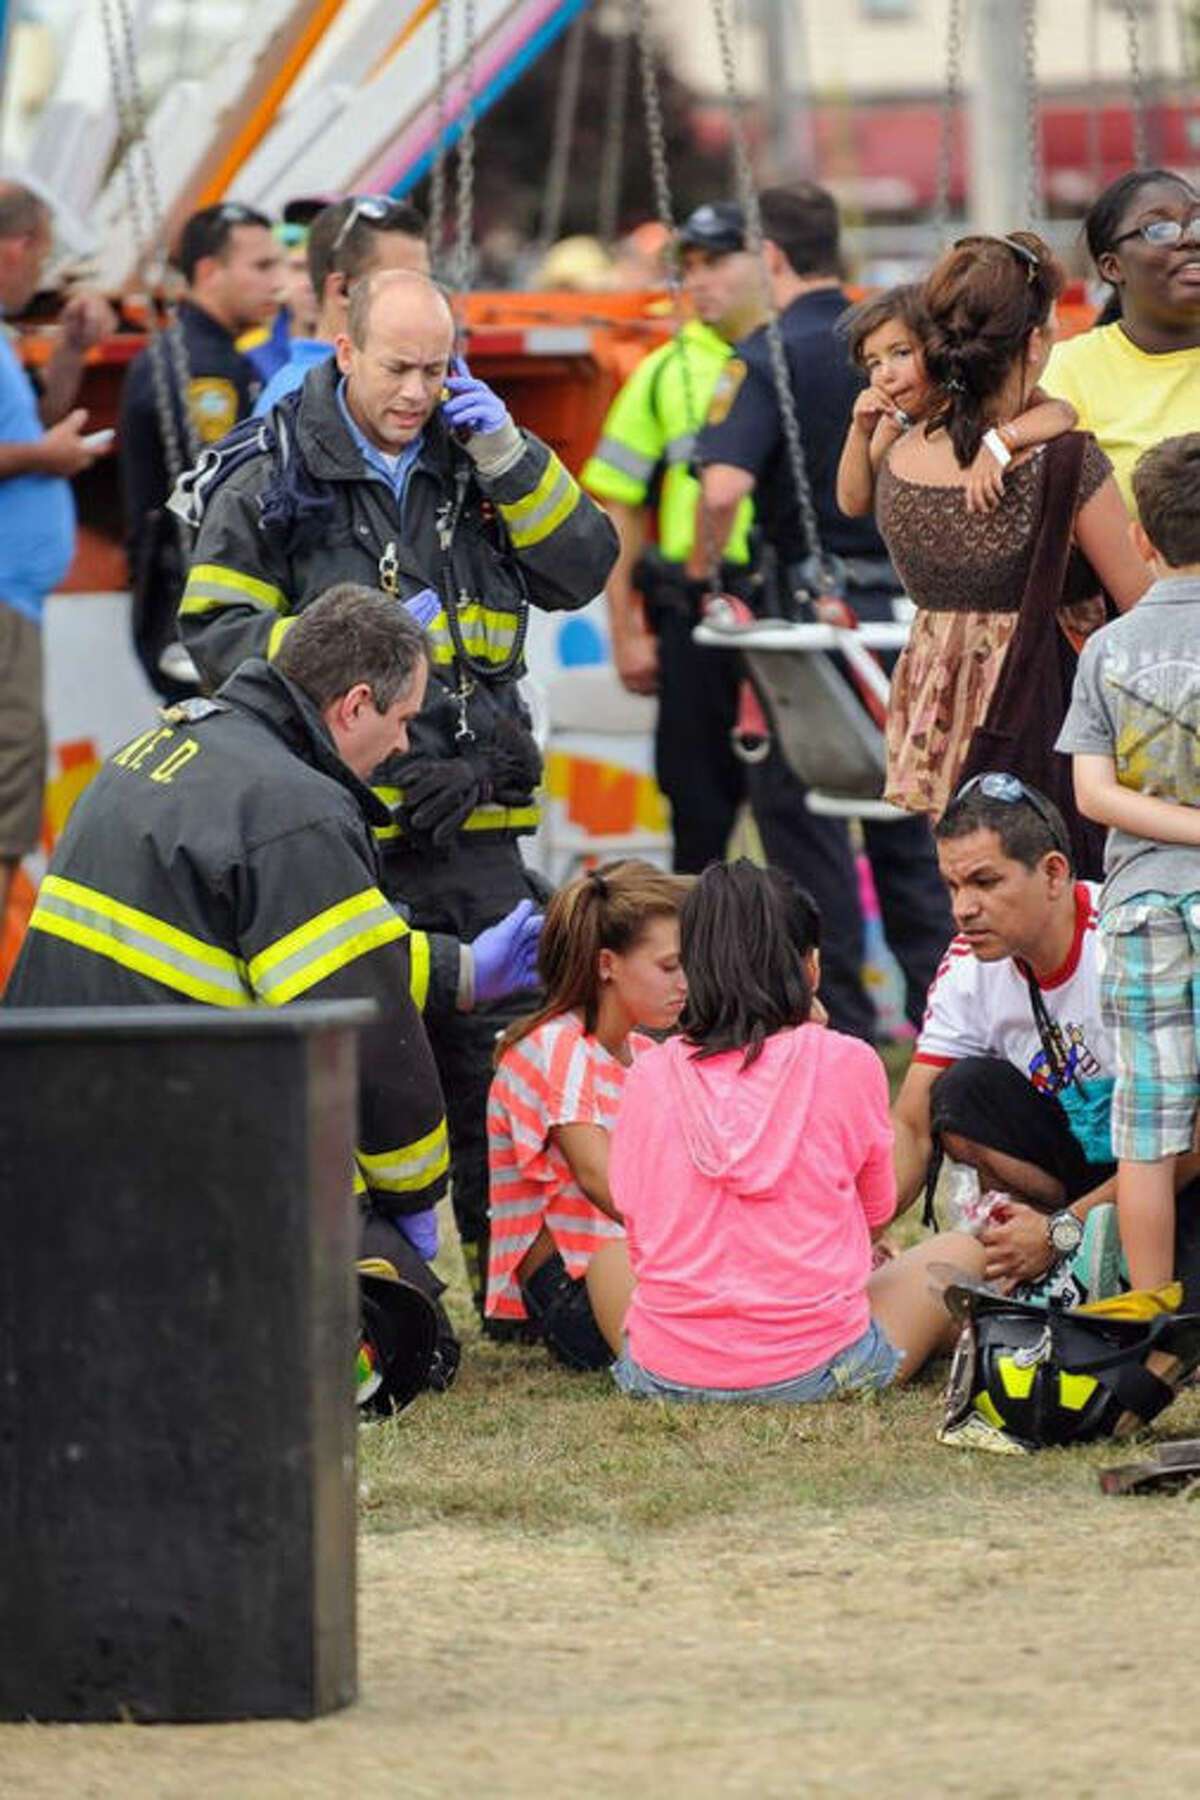 Thirteen children were injured when a festival attraction that swings riders into the air lost power at a community fair in Norwalk, Conn, on Sunday Sept. 8, 2013, but none of the injuries appeared to be life-threatening, authorities said. Most of the children suffered minor injuries and were treated at the Oyster Festival in Norwalk, police said. Norwalk Police Chief Thomas Kulhawik said there were initial reports of serious injuries but preliminary indications are that the injuries were not as severe as first feared. (AP Photo/The Hour Miguel Cruz) MANDATORY CREDIT